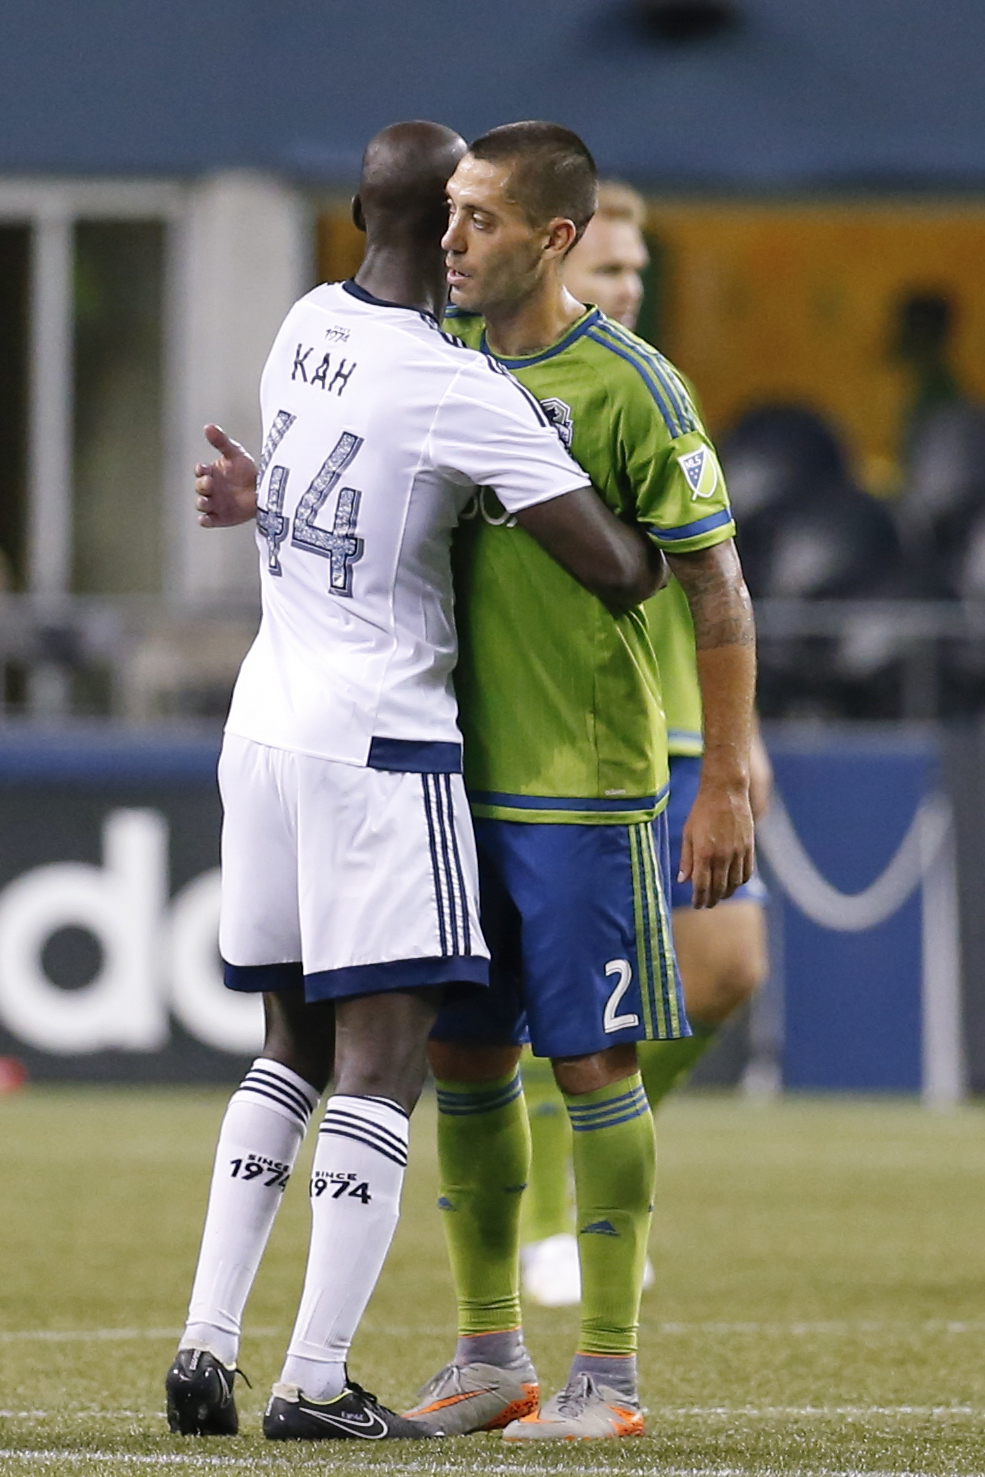 Wait, who's the striker again? Kah adds two goals in 3-0 routing of Seattle while Dempsey struggles in his return.